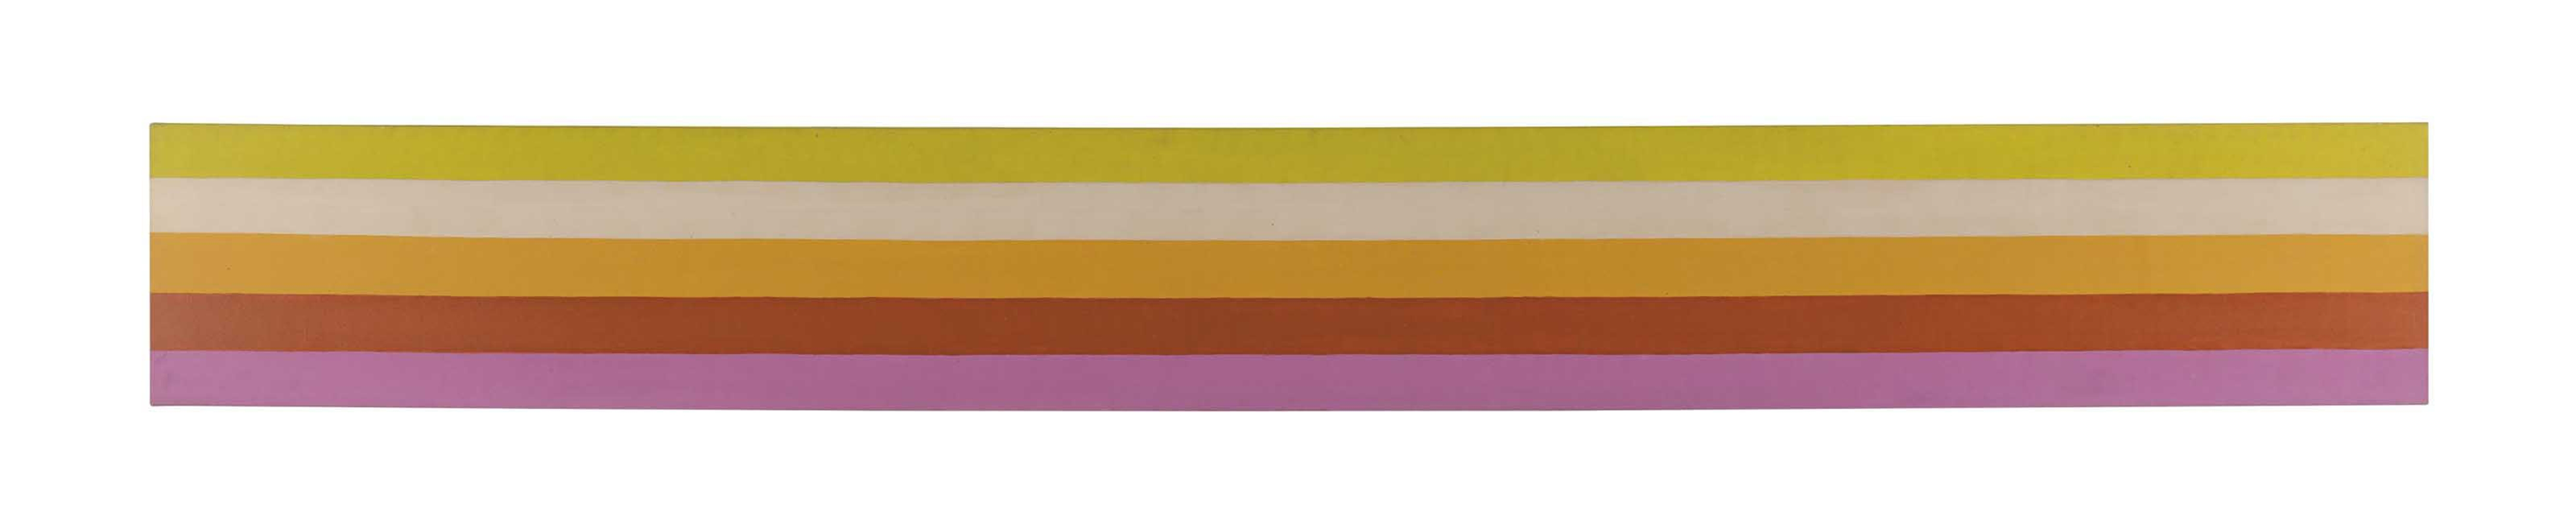 Kenneth Noland-Level Mode-1966